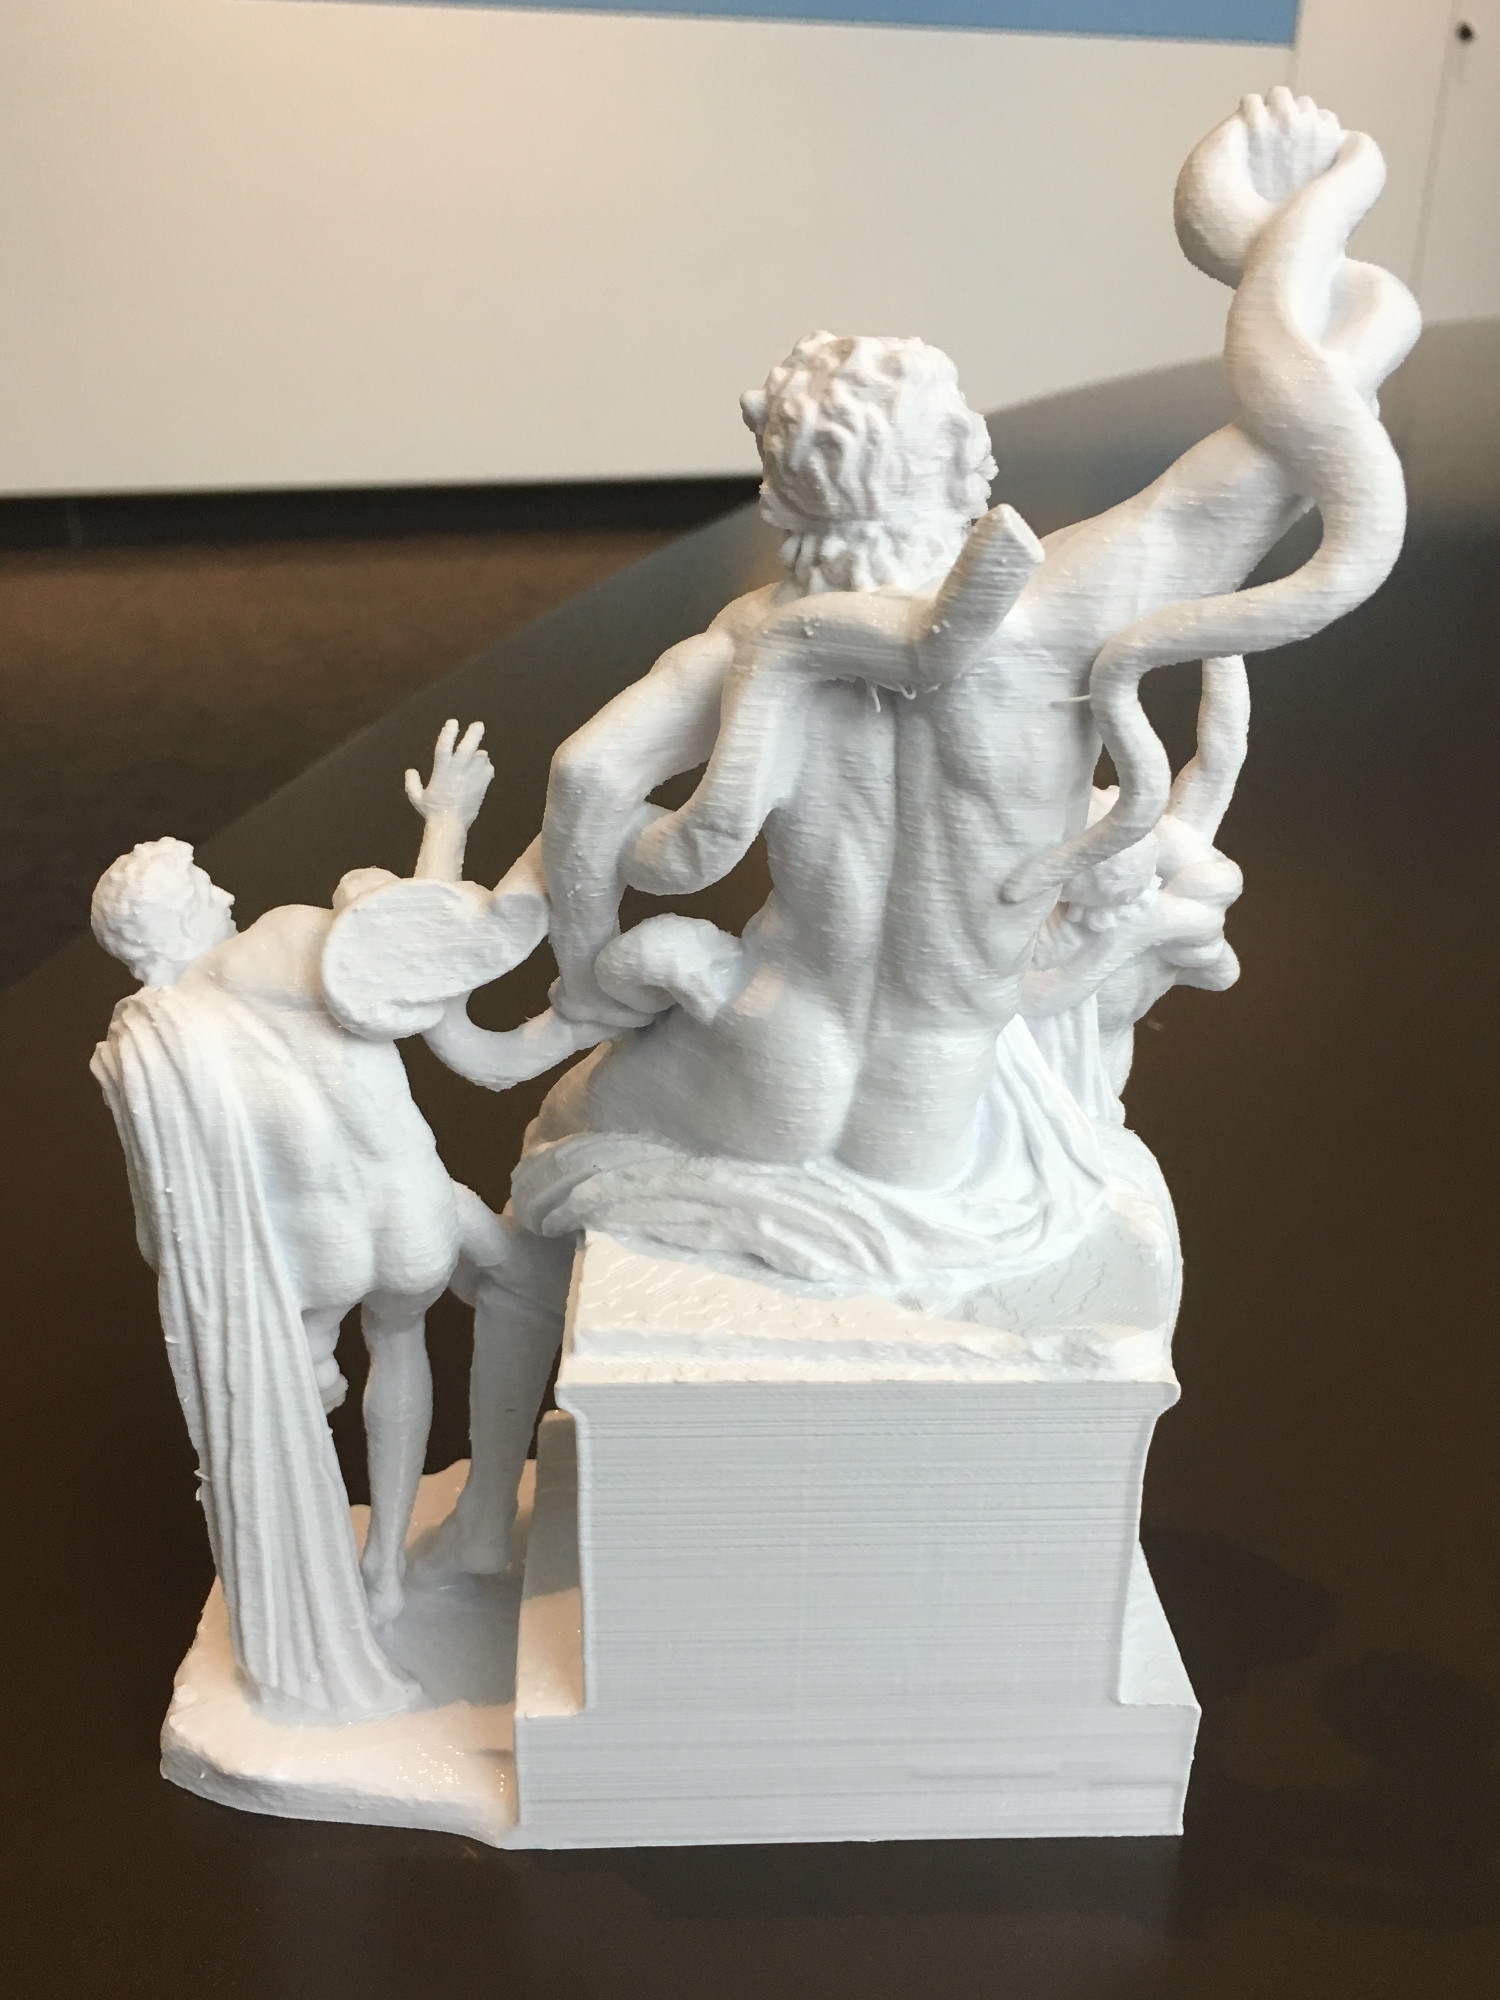 3D print of the statute Laocoön and His Sons